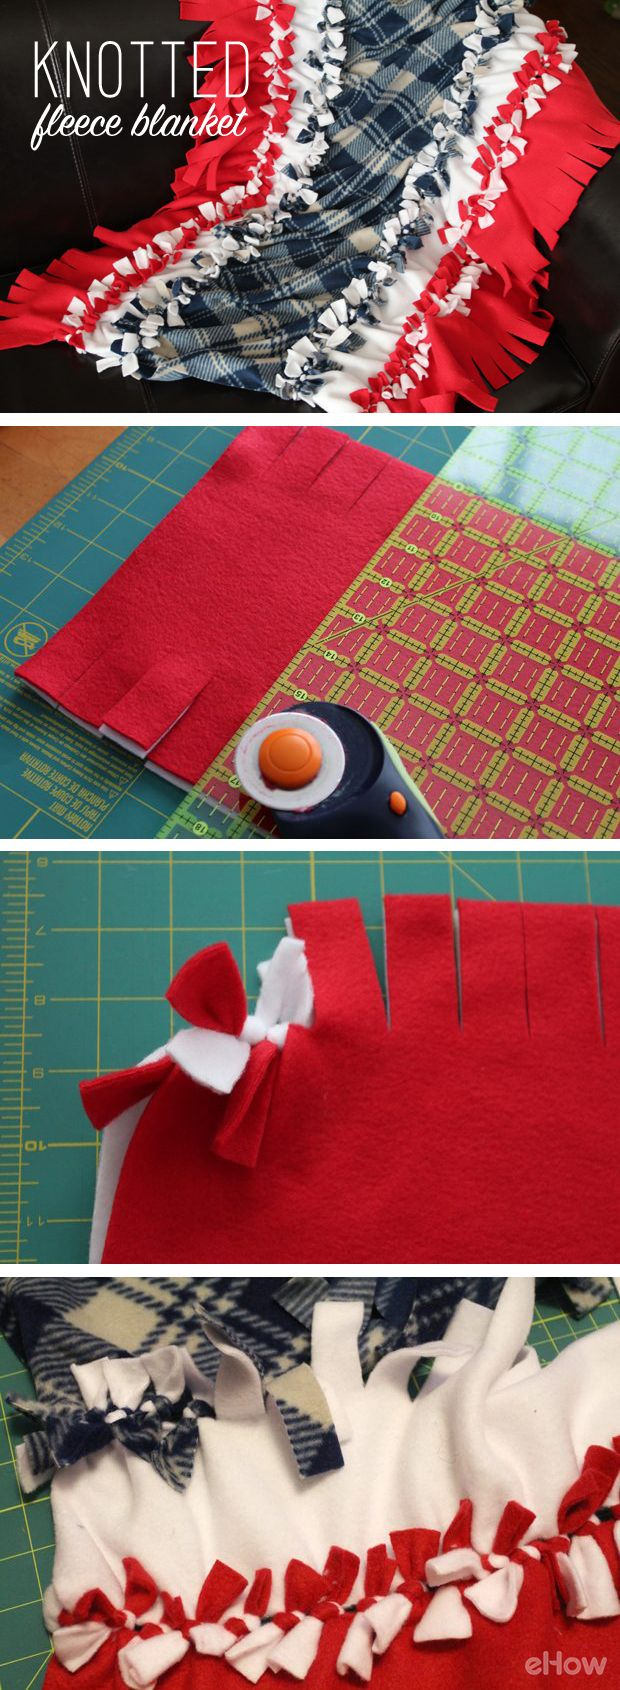 No-sew knot fleece blanket that make great gifts! Any level crafter can make this easily. DIY tutorial with images here: http://www.ehow.com/how_4662261_knot-fleece-blankets.html?utm_source=pinterest.com&utm_medium=referral&utm_content=inline&utm_campaign=fanpage